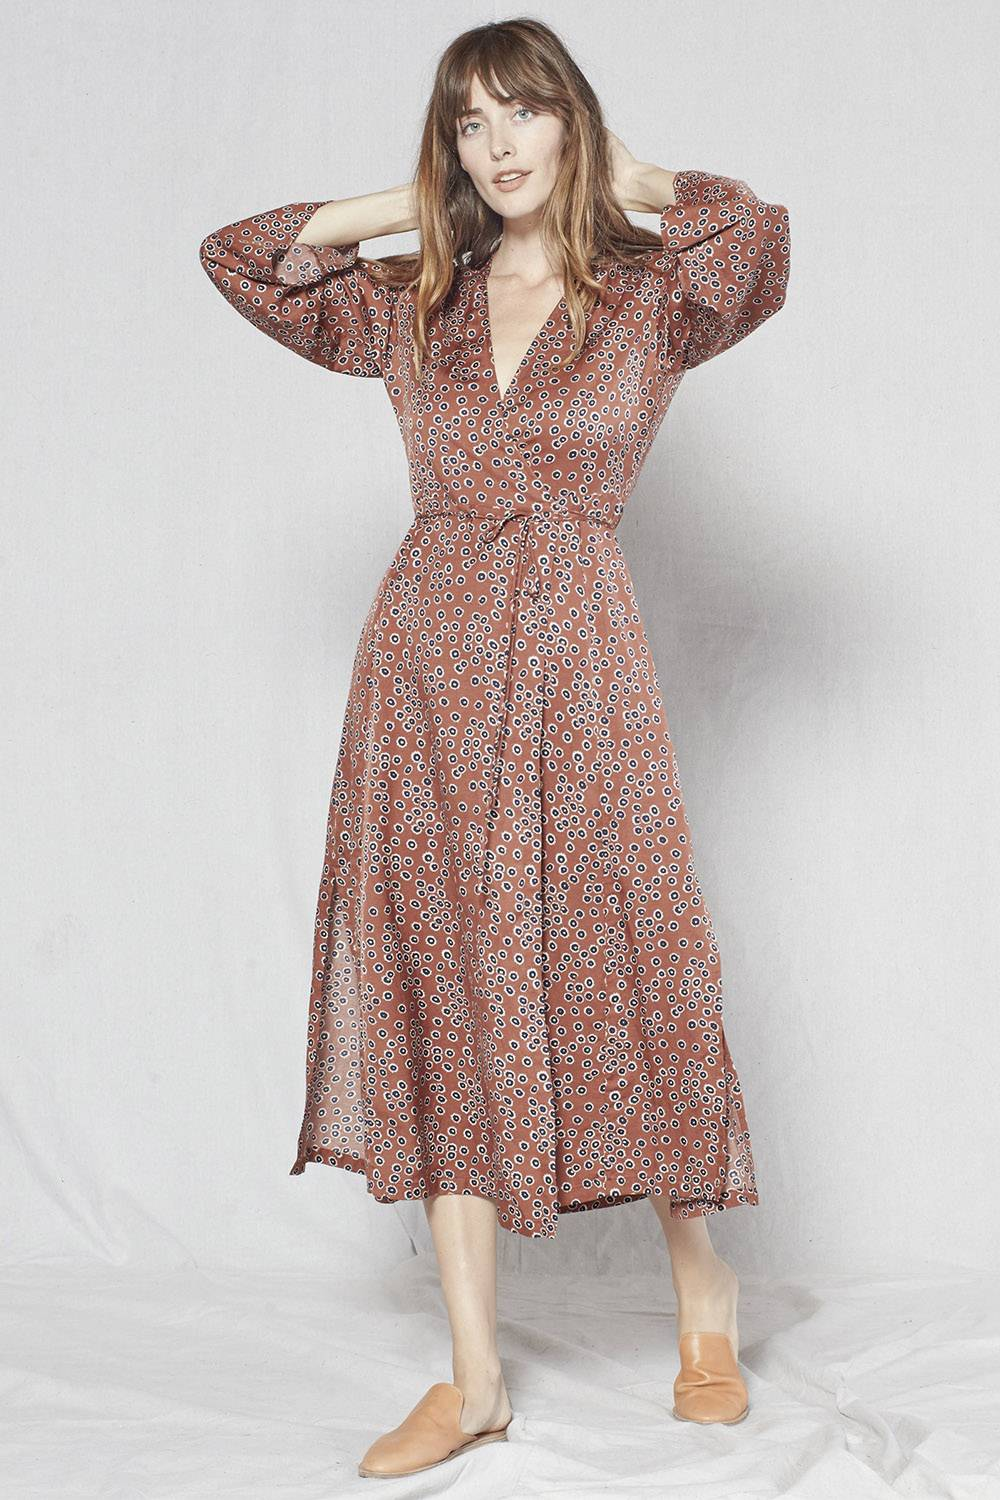 outerknown cheap ethical wrap dress